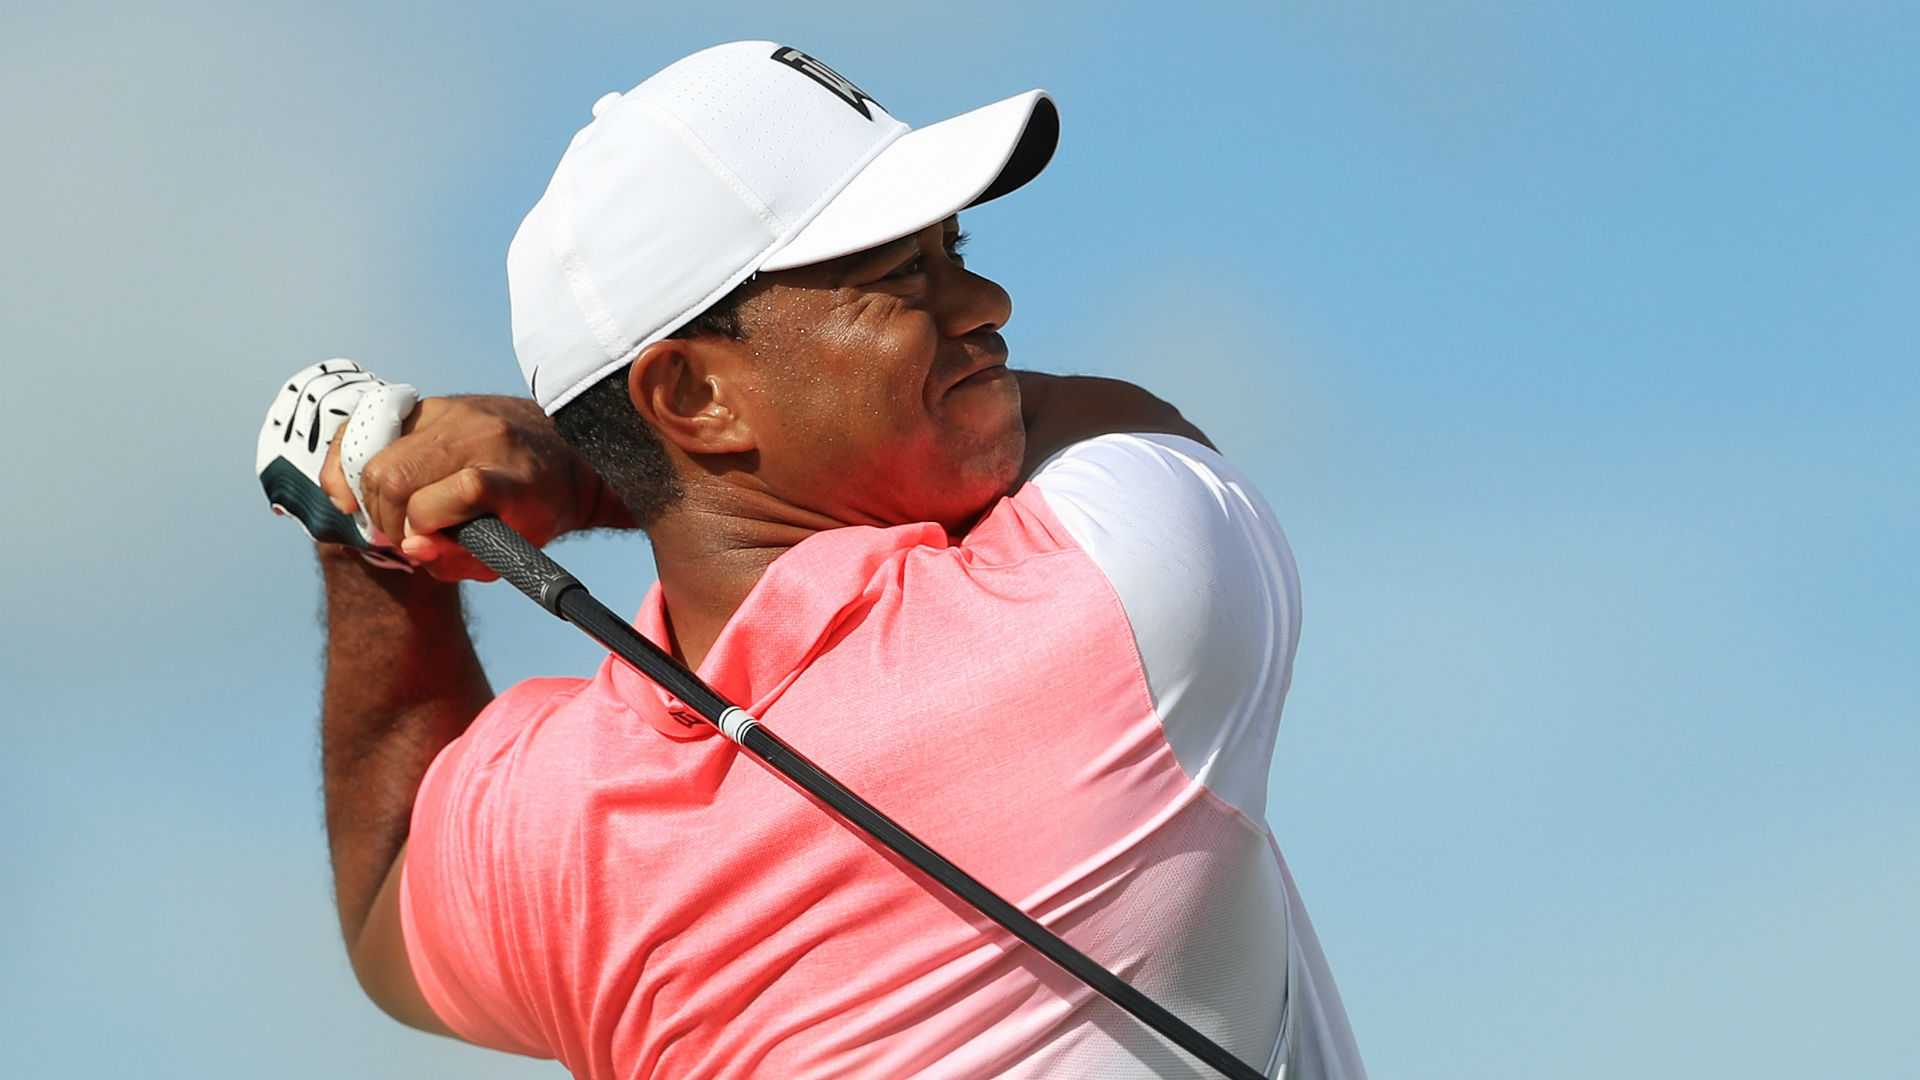 WATCH: Vintage Tiger Woods? Drive a par-4 green, roll in the eagle putt